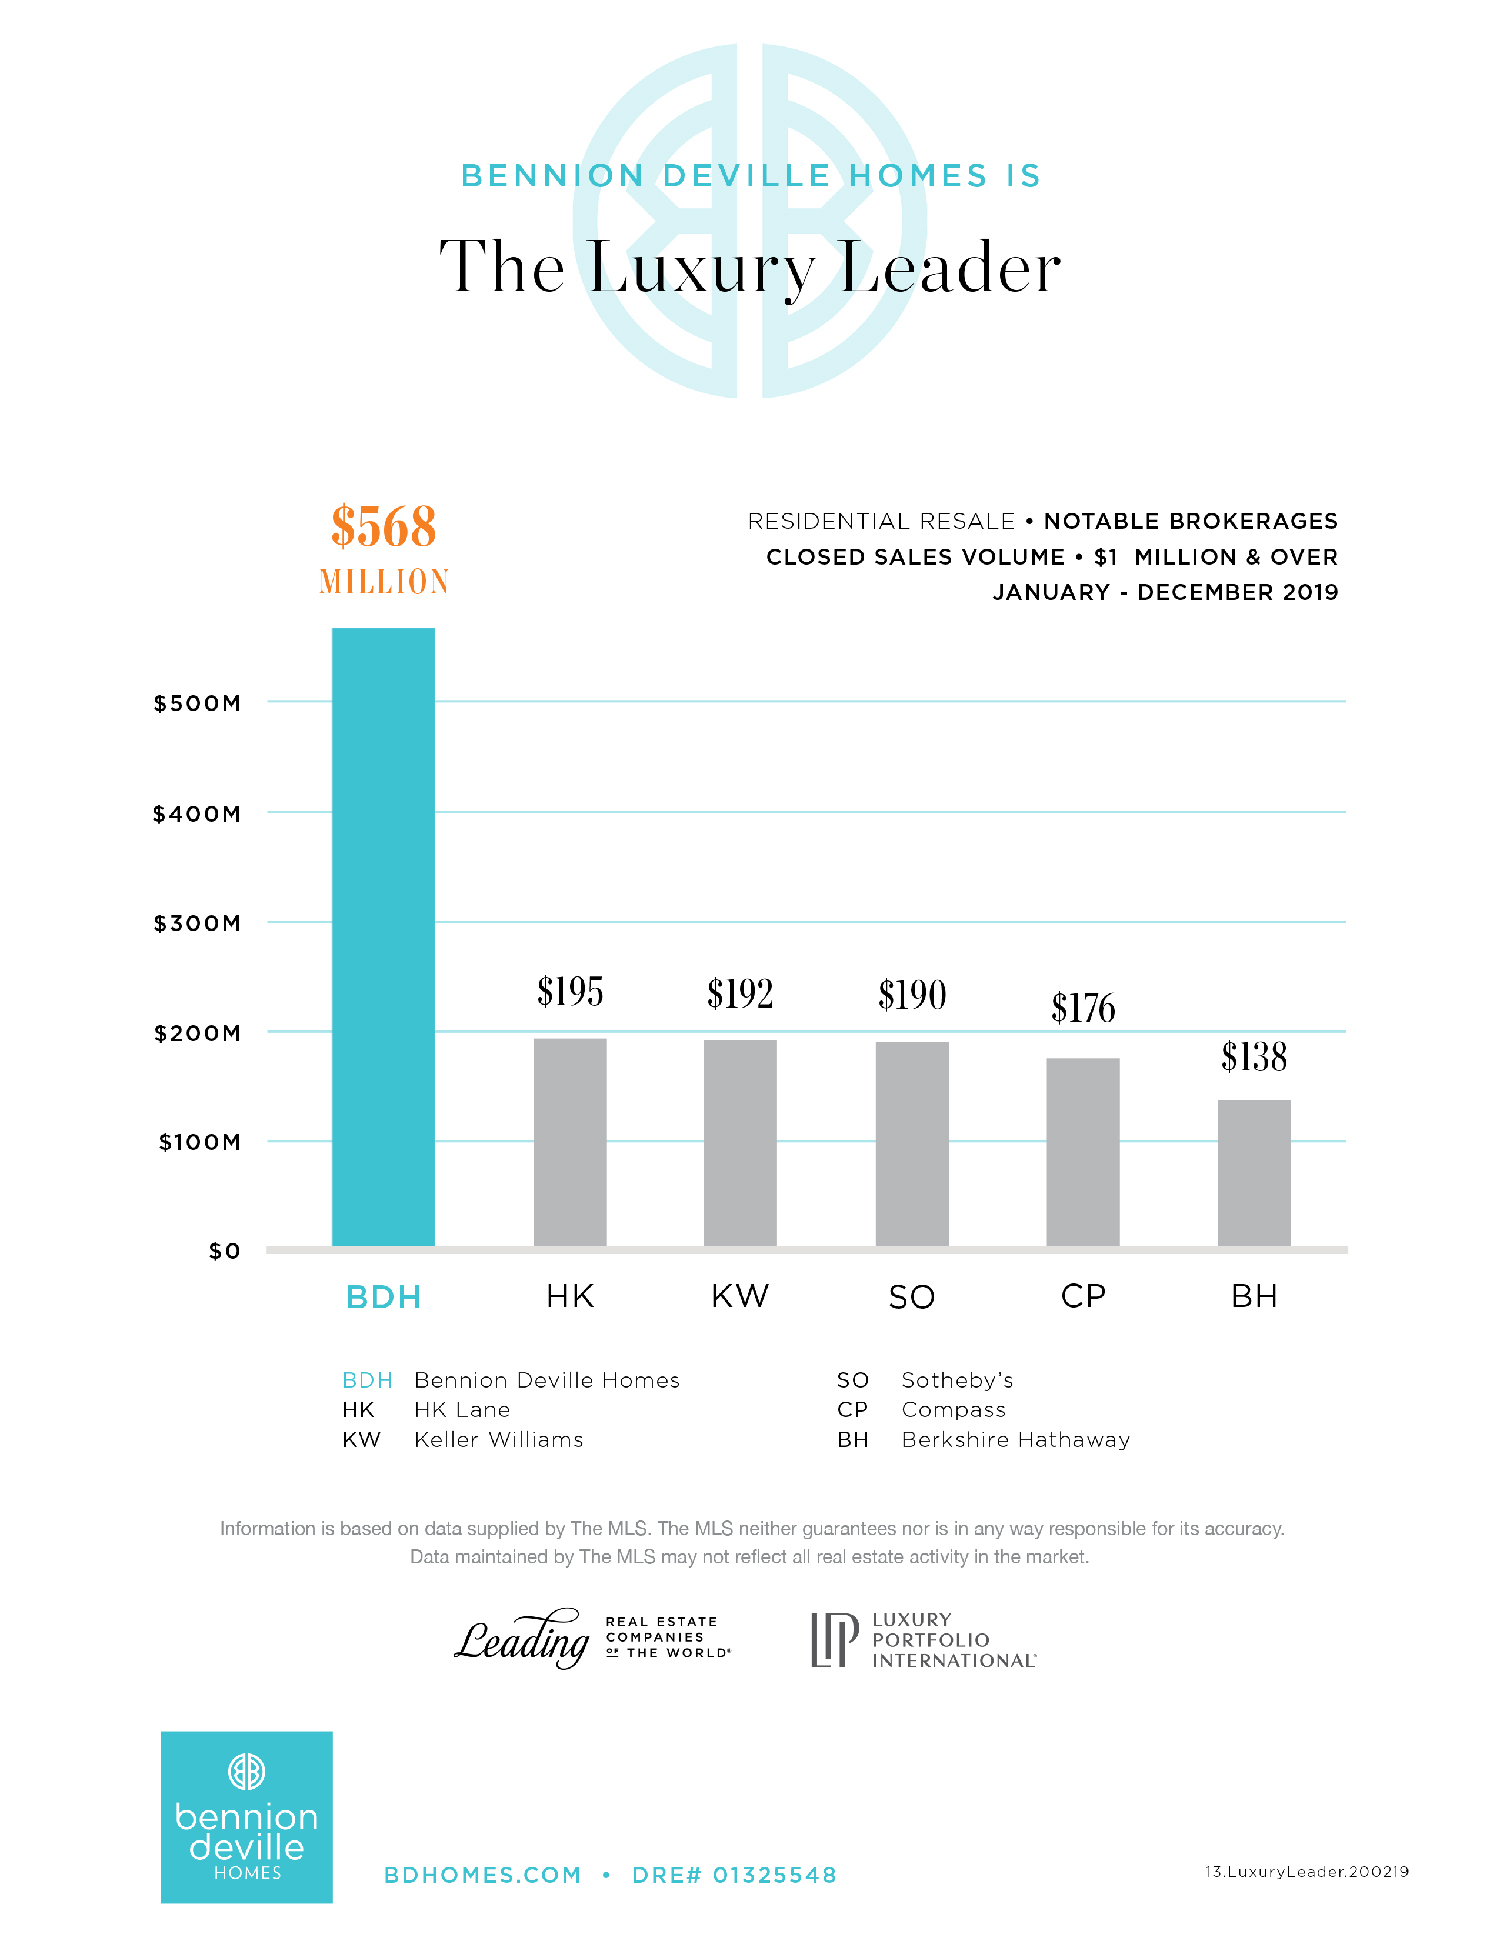 Bennion Deville Homes is the Luxury Leader- Residential Resale Notable Brokerages 2019